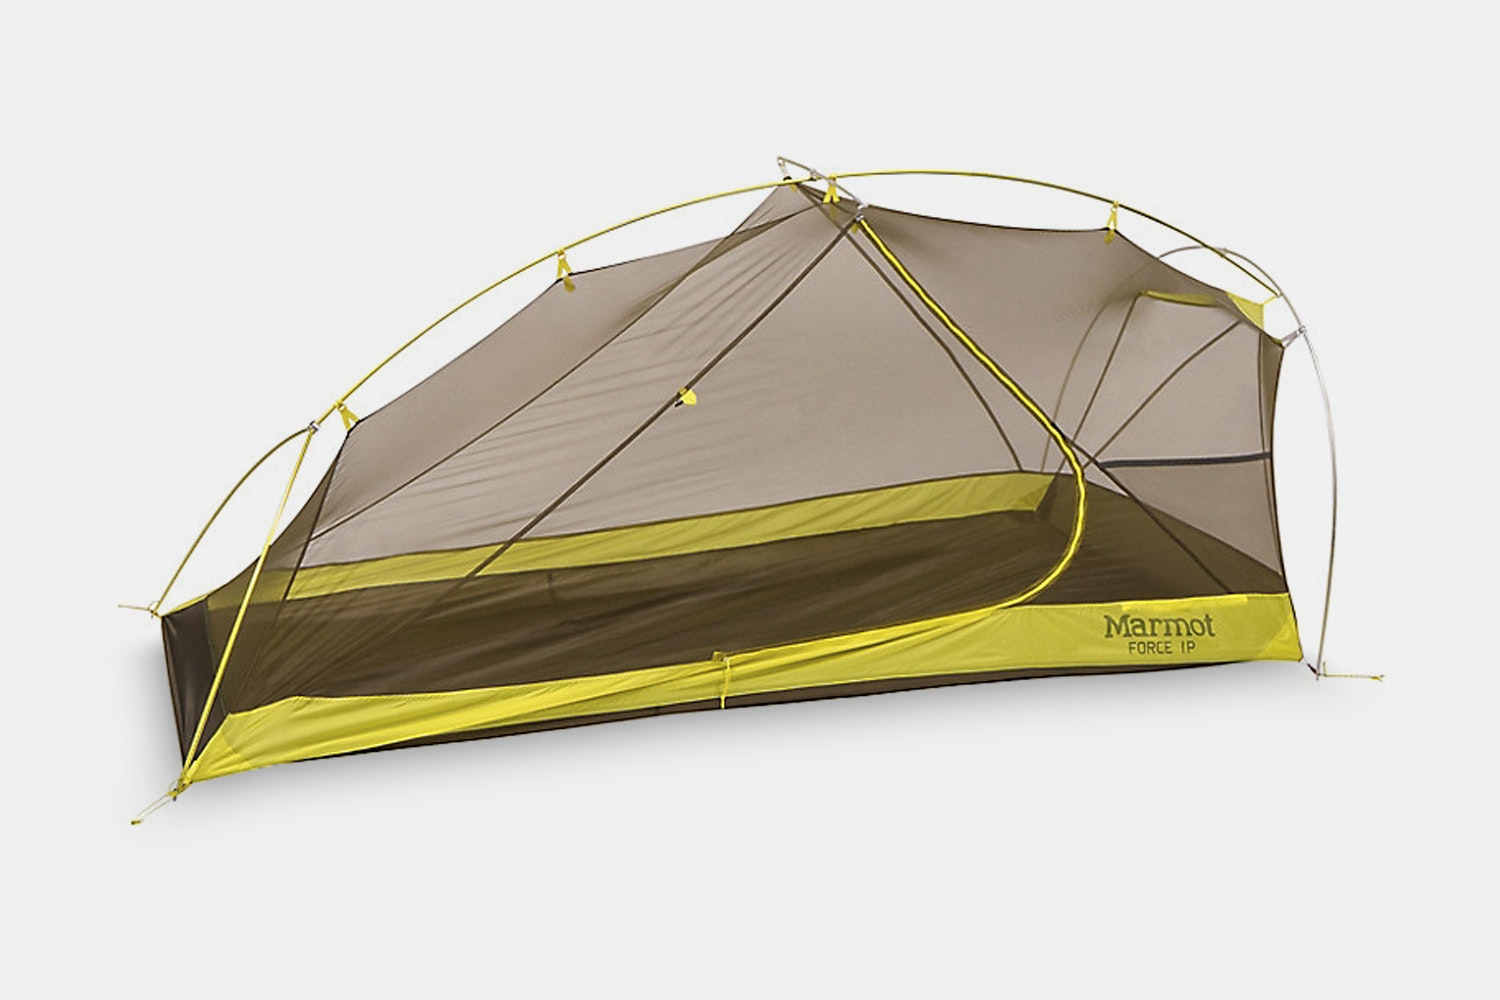 Marmot Force Series Tents